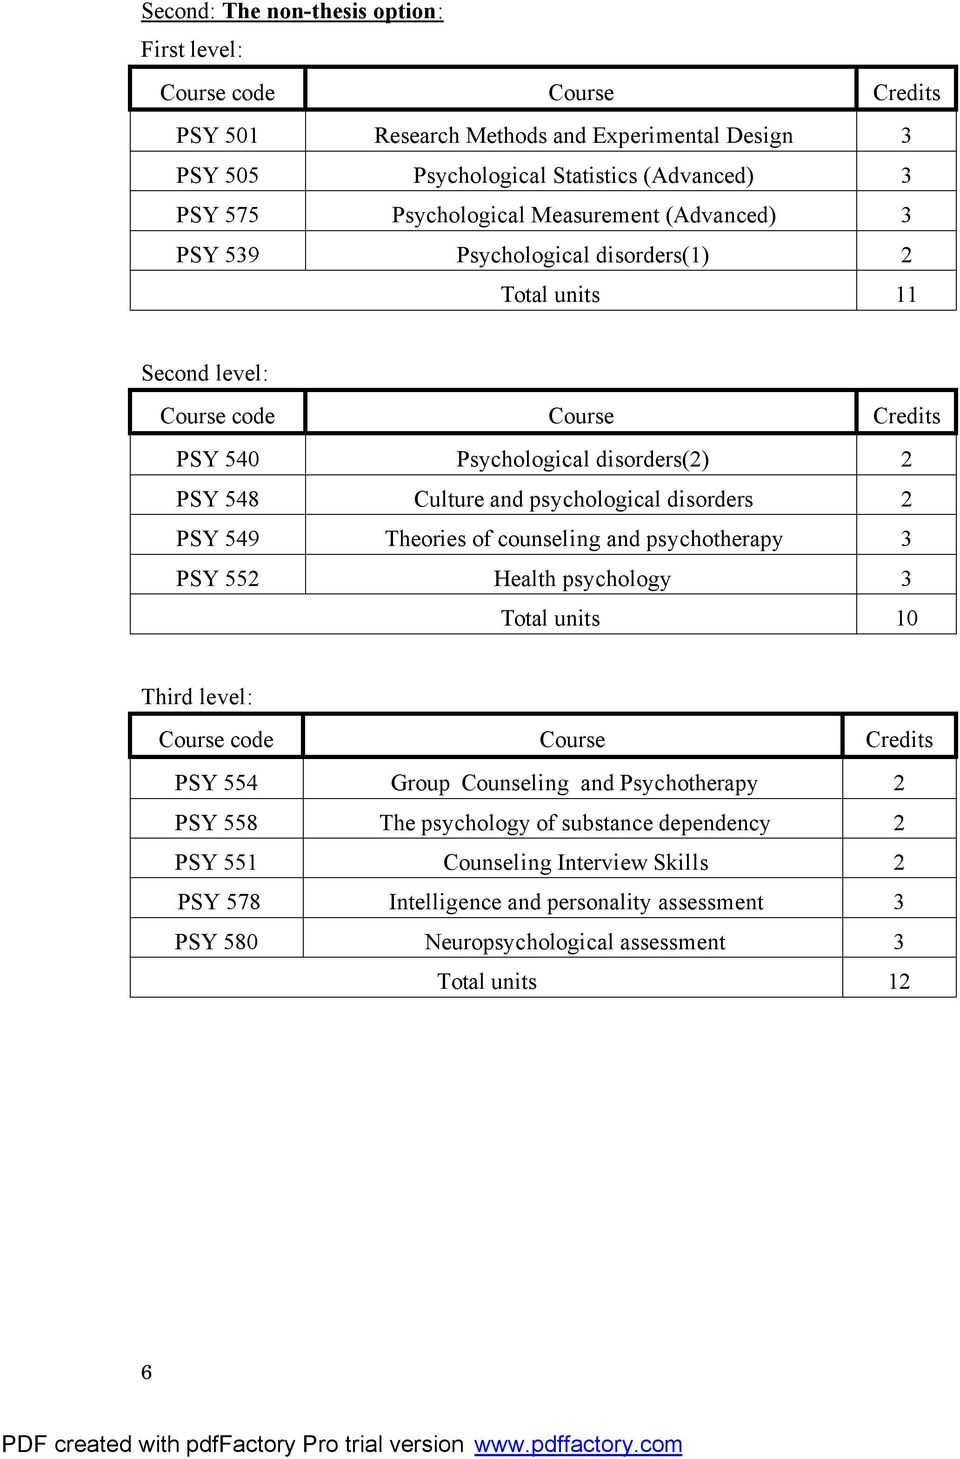 disorders 2 PSY 549 Theories of counseling and psychotherapy 3 PSY 552 Health psychology 3 Total units 10 Third level: PSY 554 Group Counseling and Psychotherapy 2 PSY